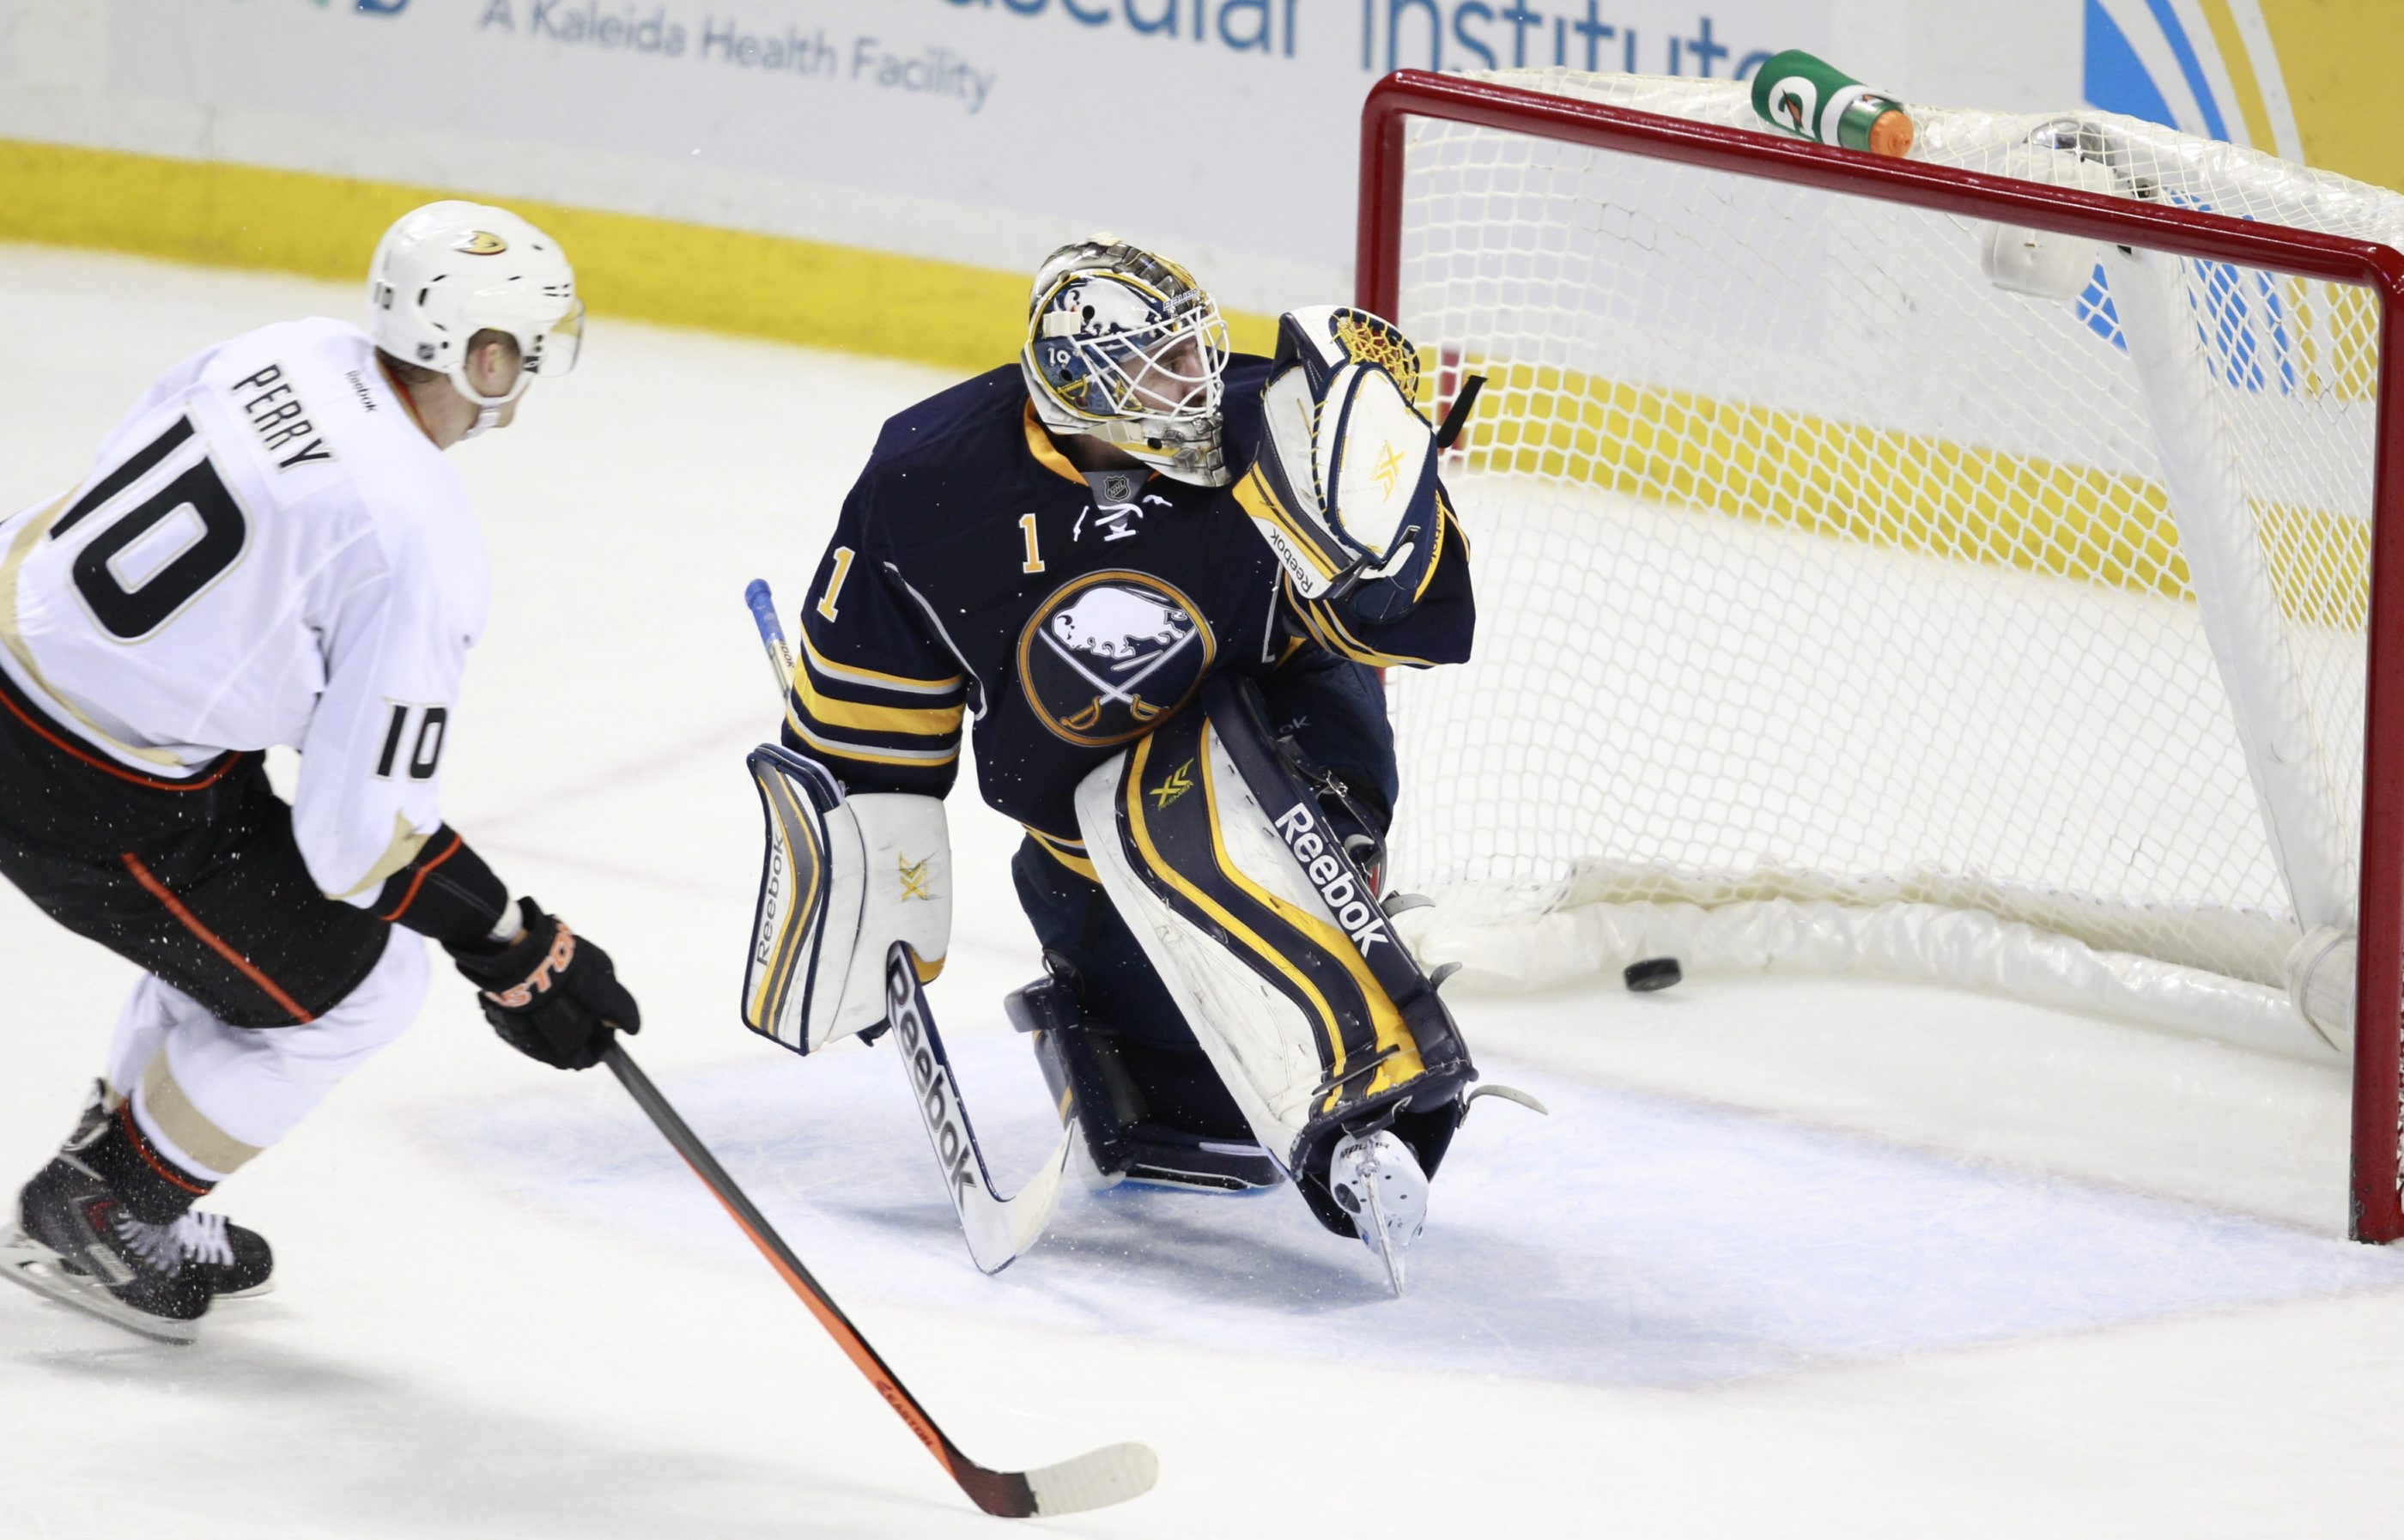 Sabres goaltender Jhonas Enroth can't stop a shot by Corey Perry of the Ducks during the third period Saturday.